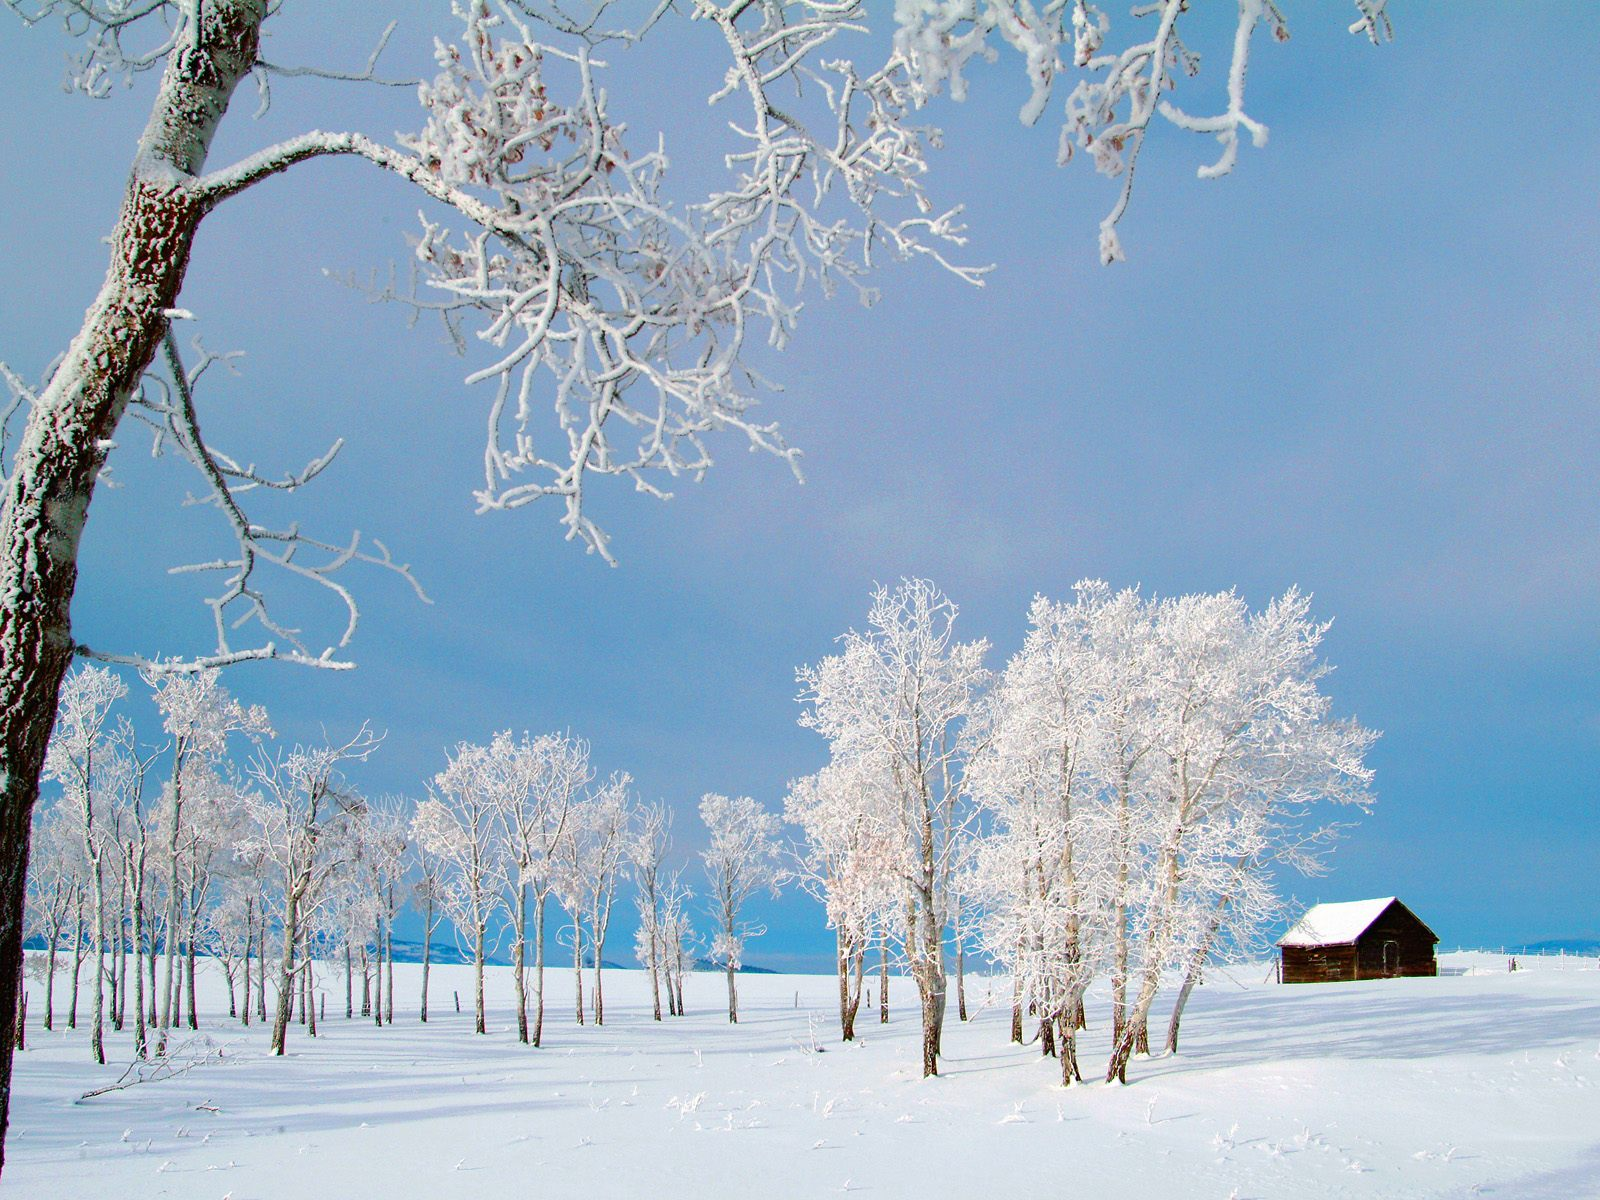 3d winter scenes wallpaper - photo #17